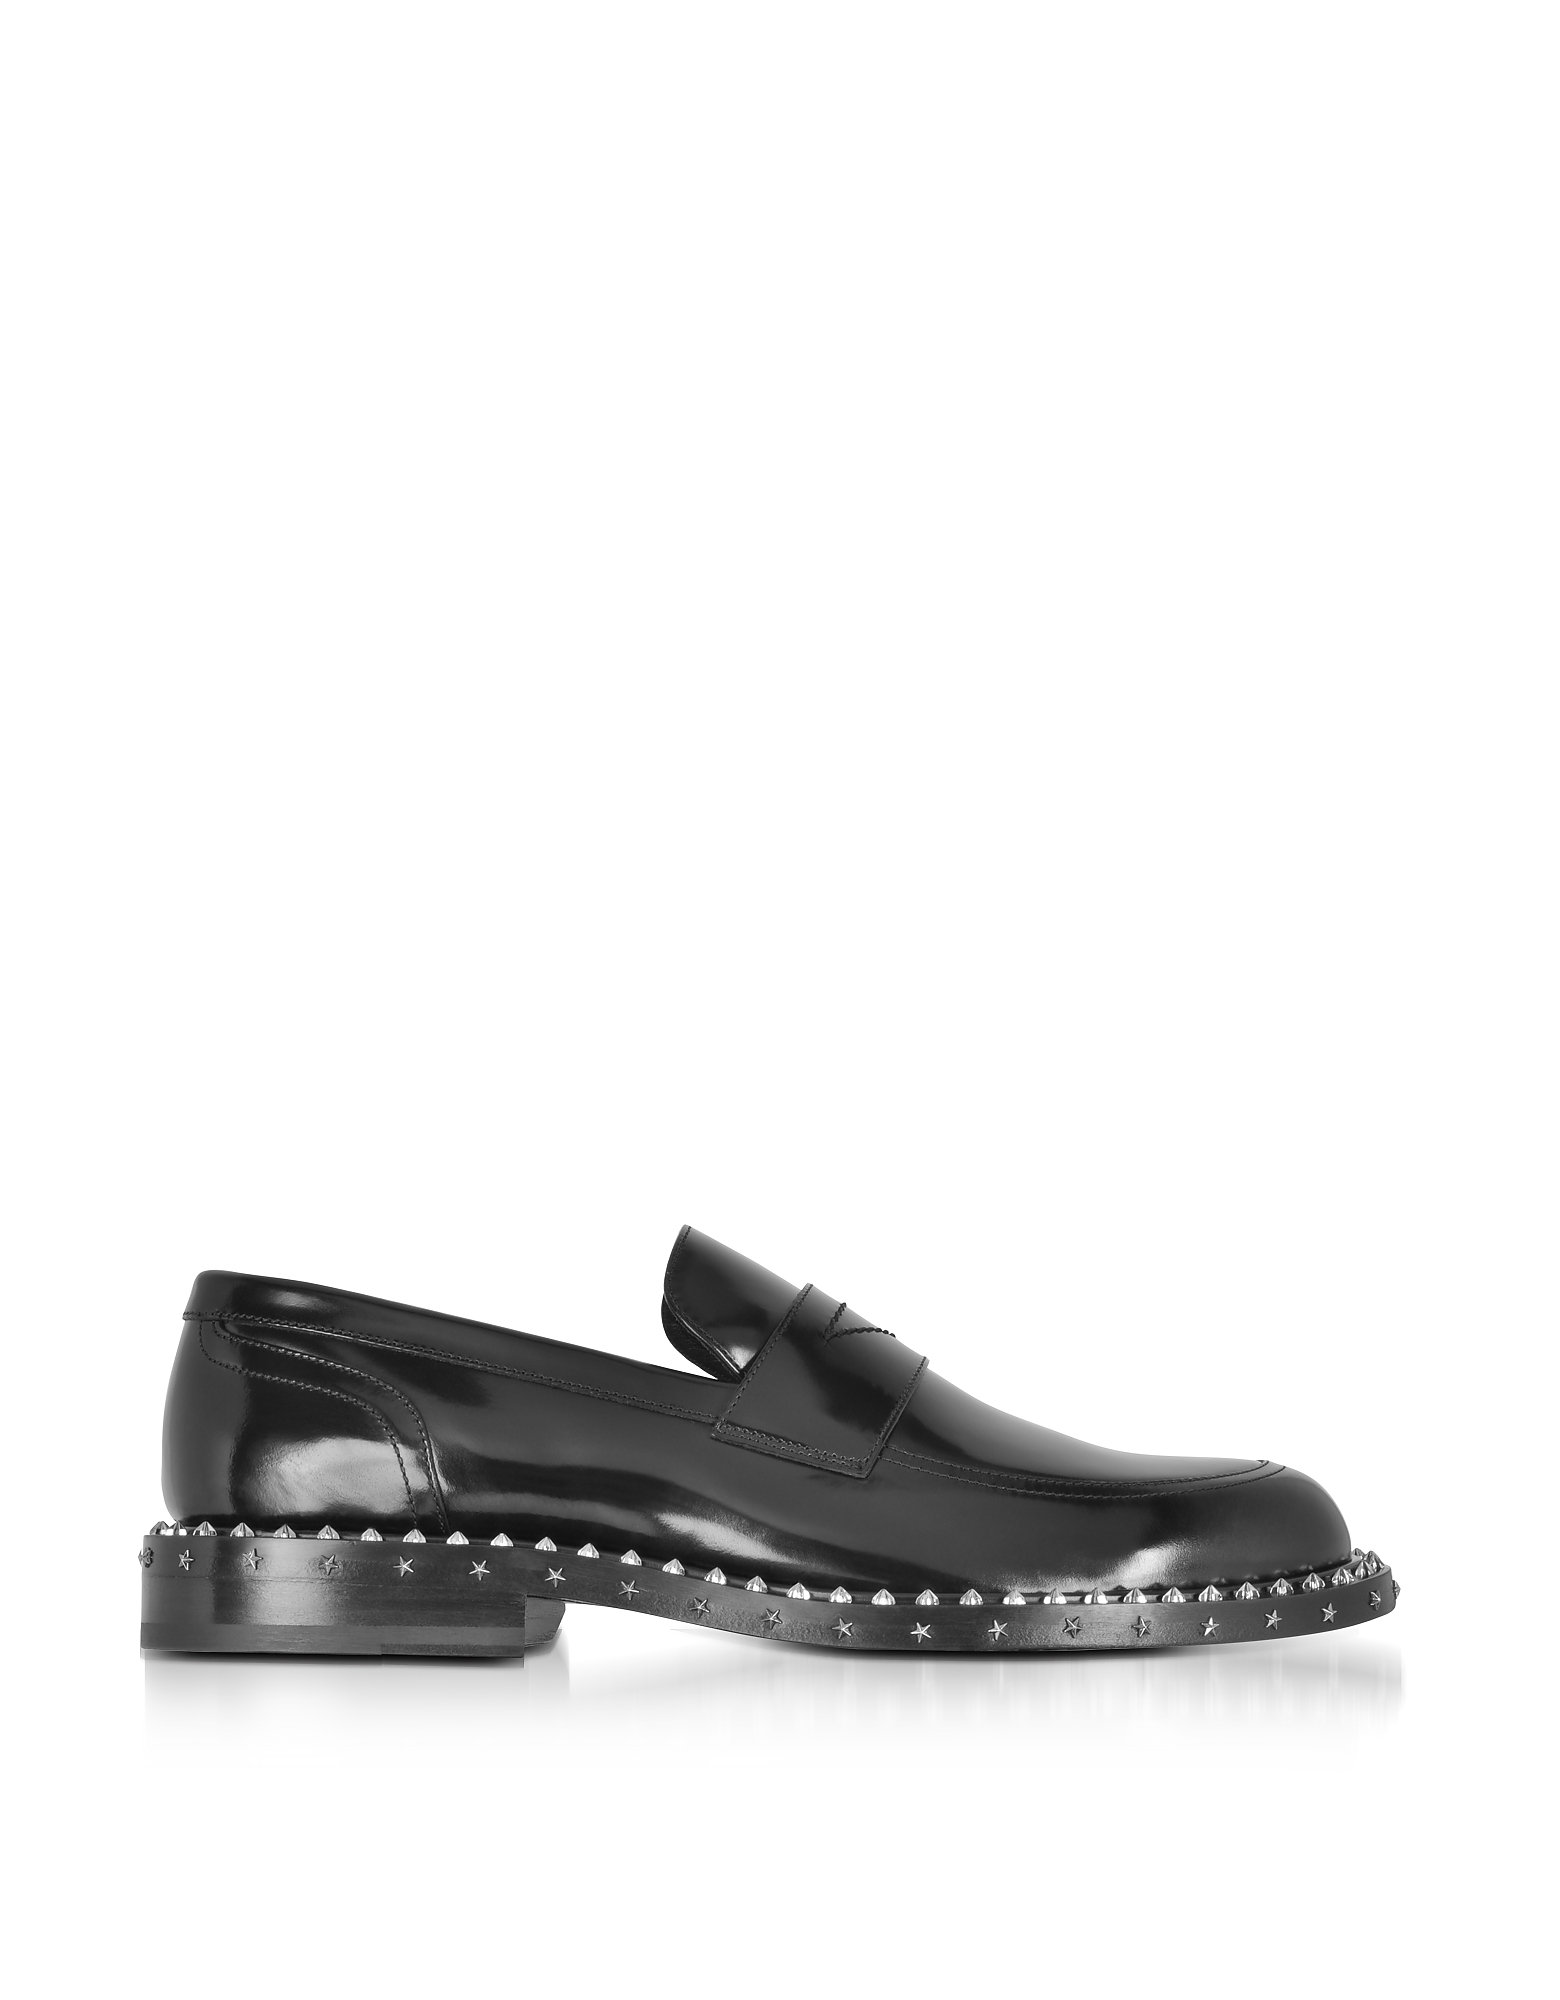 Jimmy Choo Shoes, Black Leather Stars and Studs Men's Loafer